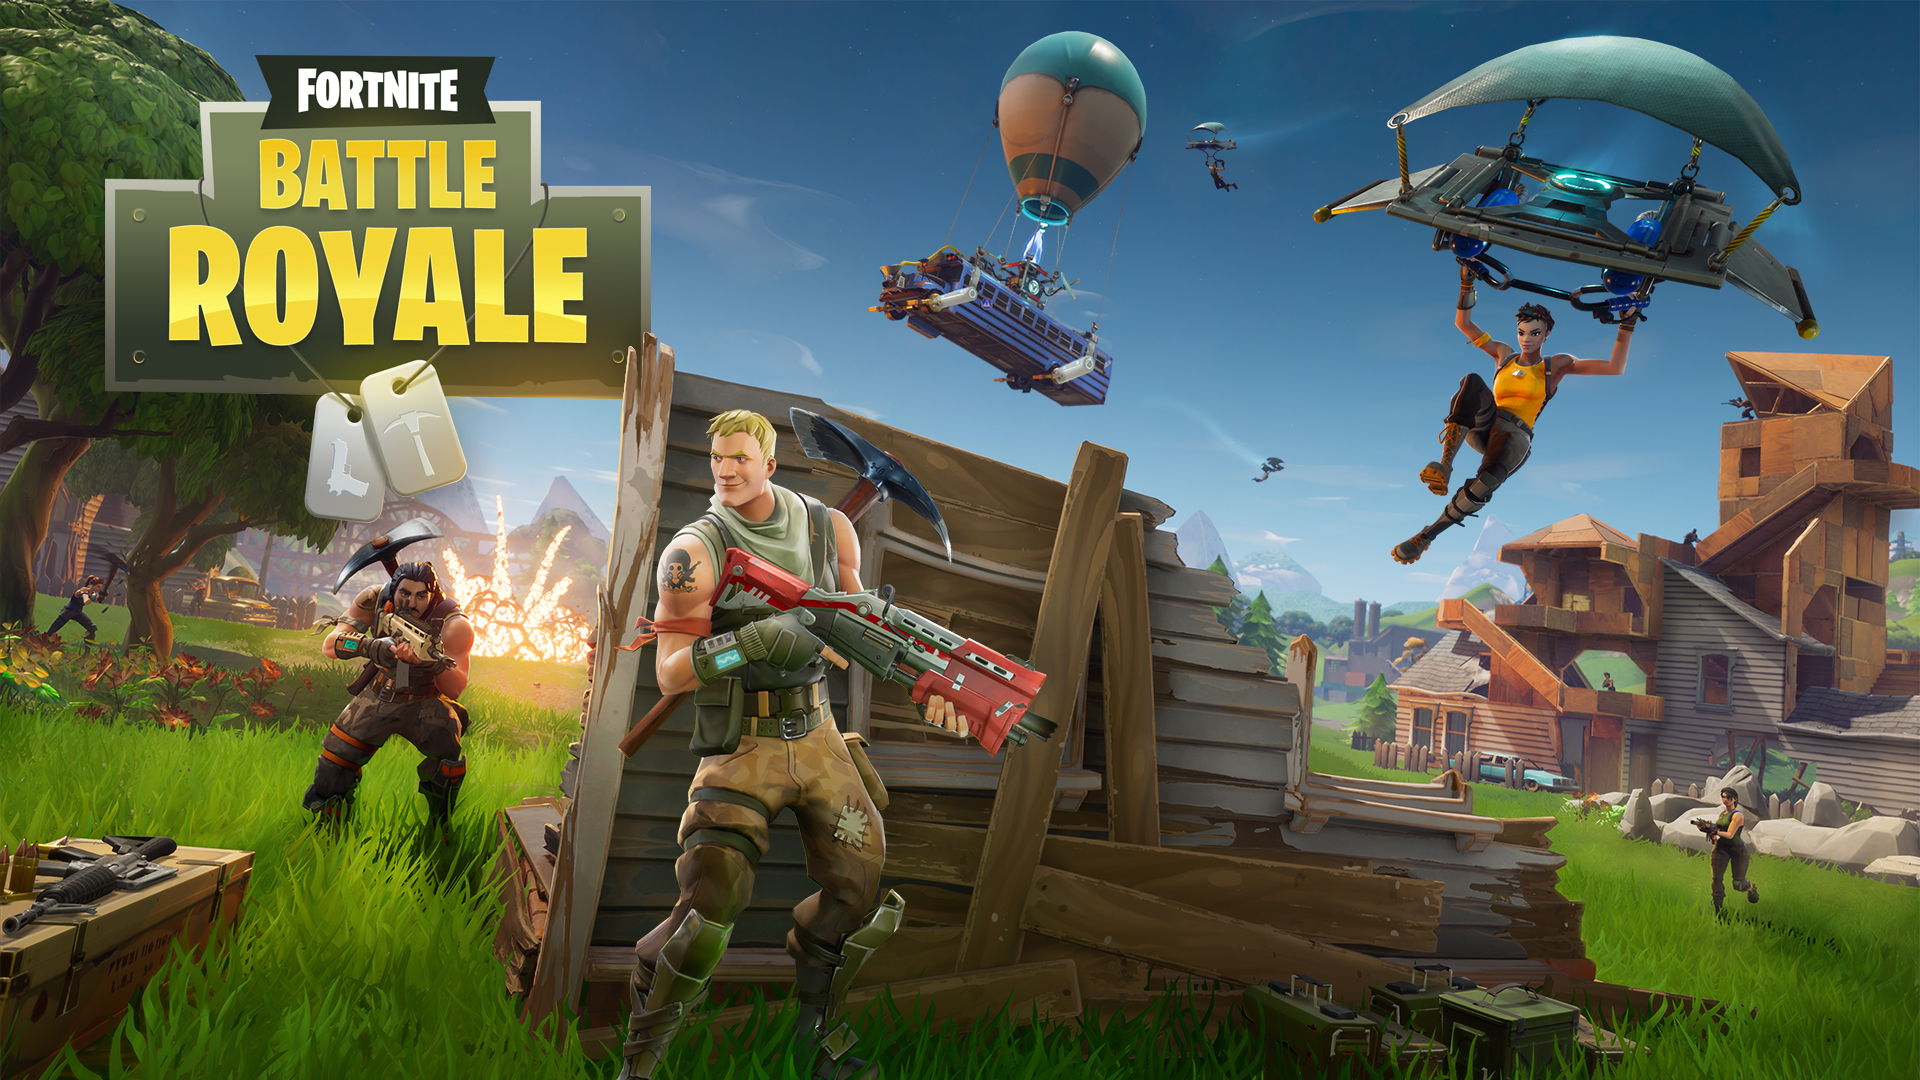 Fortnite%2Fblog%2Fpatch-v-1-6---fortnite-battle-royale%2FFortnite_BR_Key-Art_w-Logo_ENG-1920x1080-3e2ce1453476b725fa59e7aeb6ecb90e4b75a0df